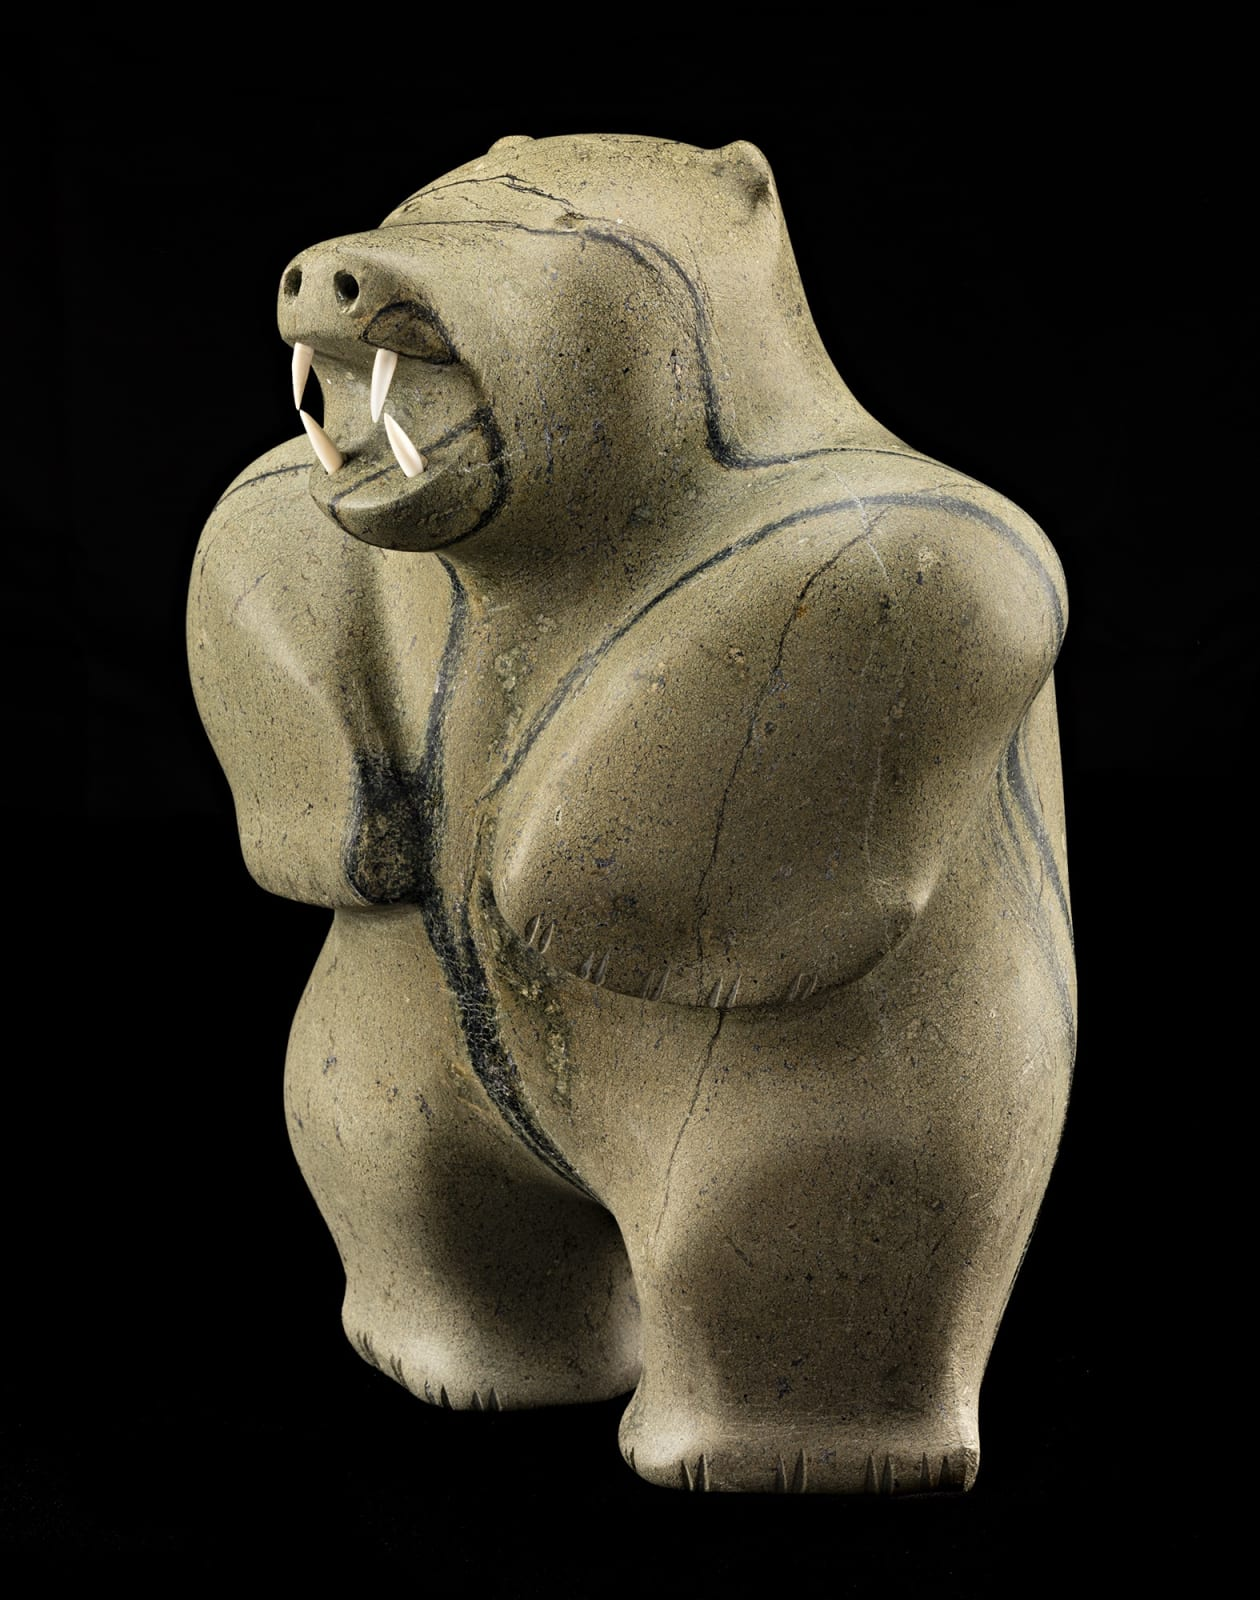 Lot 88 PAUTA SAILA, R.C.A. (1916-2009) m., KINNGAIT (CAPE DORSET) Standing Polar Bear, early 1970s stone and ivory, 12 x 8.75 x 9 in (30.5 x 22.2 x 22.9 cm) Estimate: $20,000⁠⁠⁠— $30,000 Price realized: $20,400